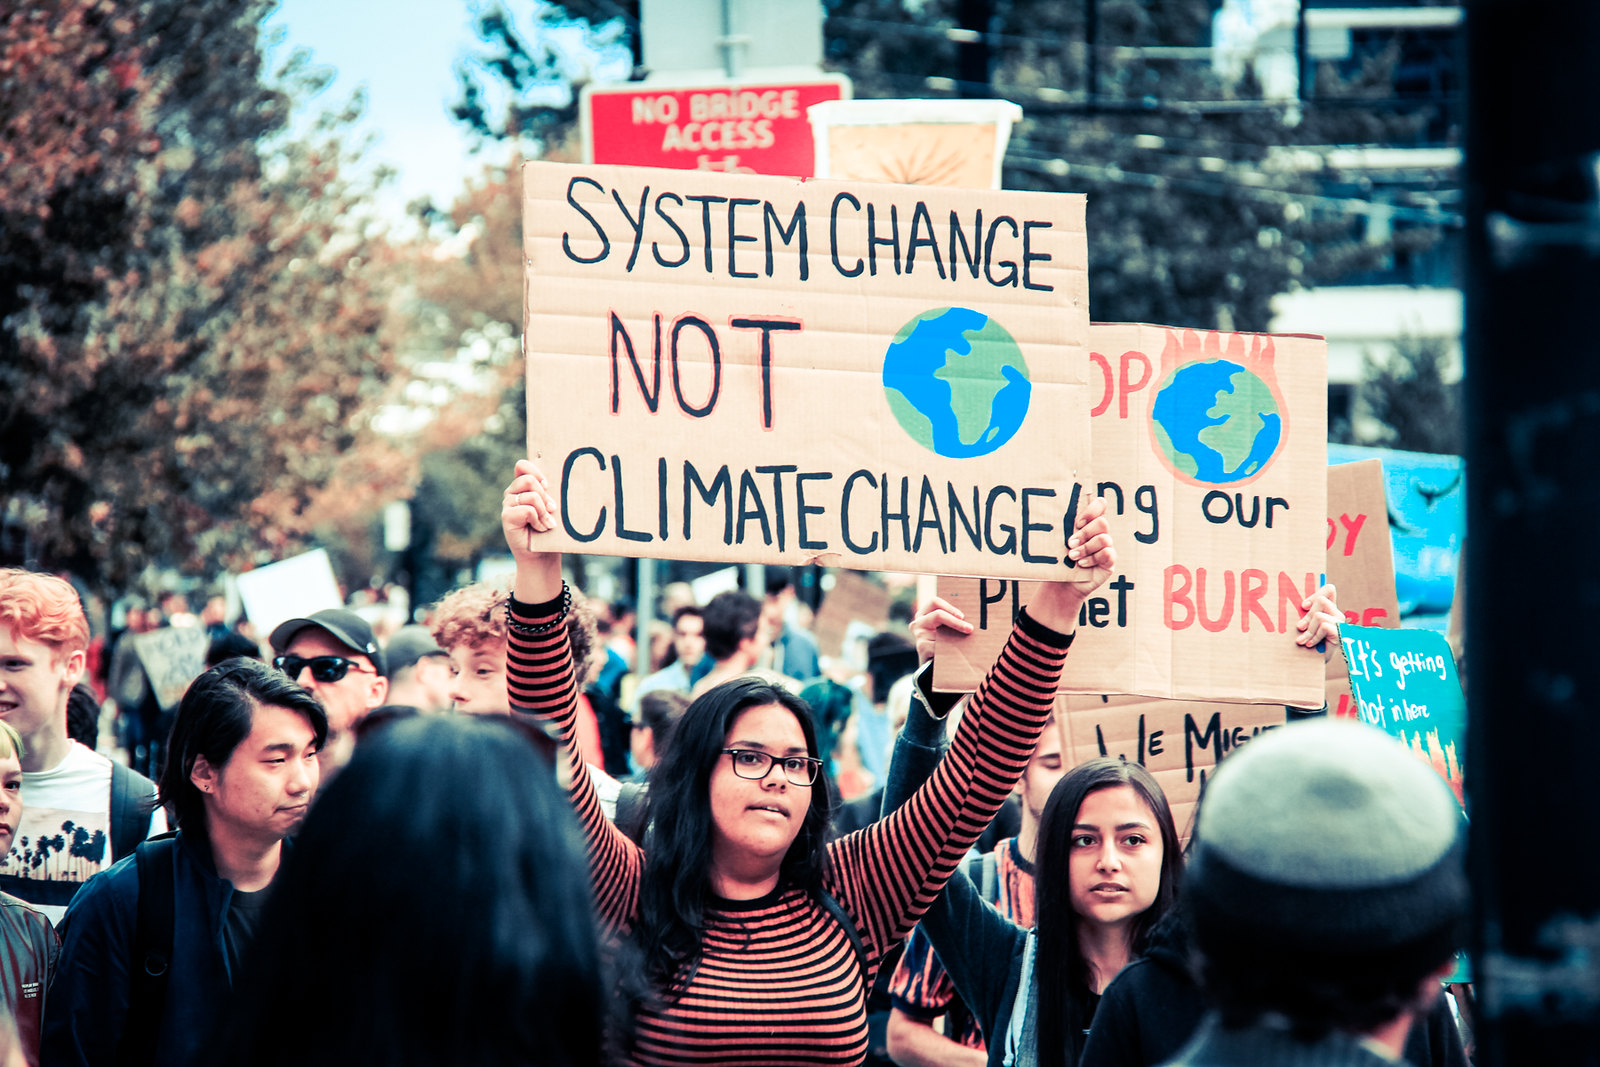 The climate is changing: Greta to march in Vancouver today